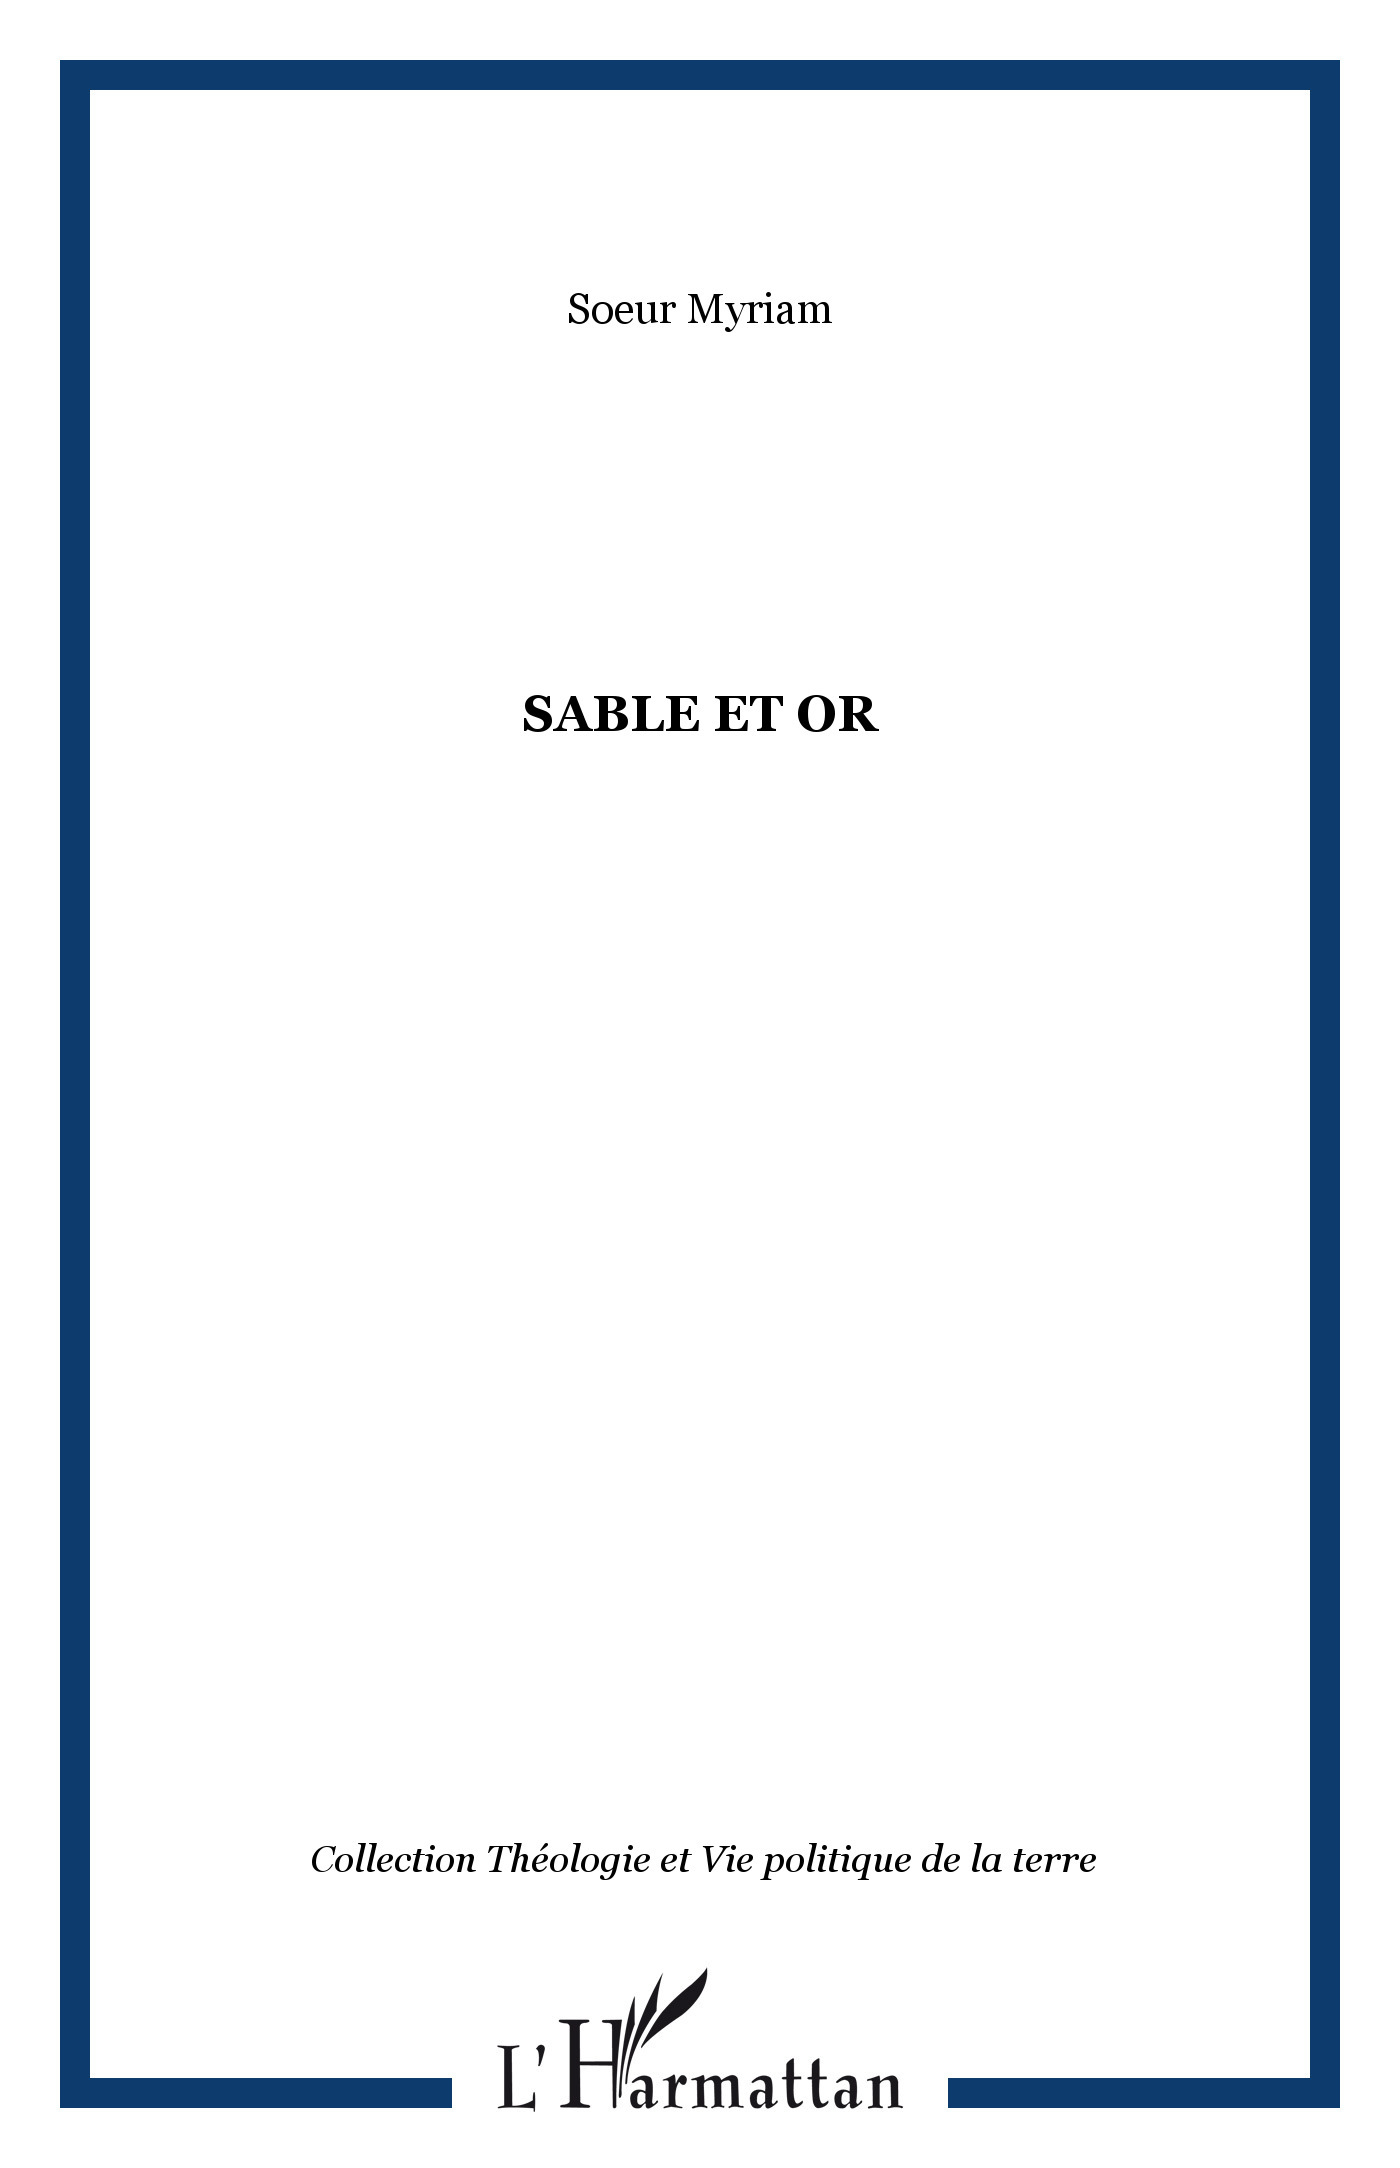 SABLE ET OR